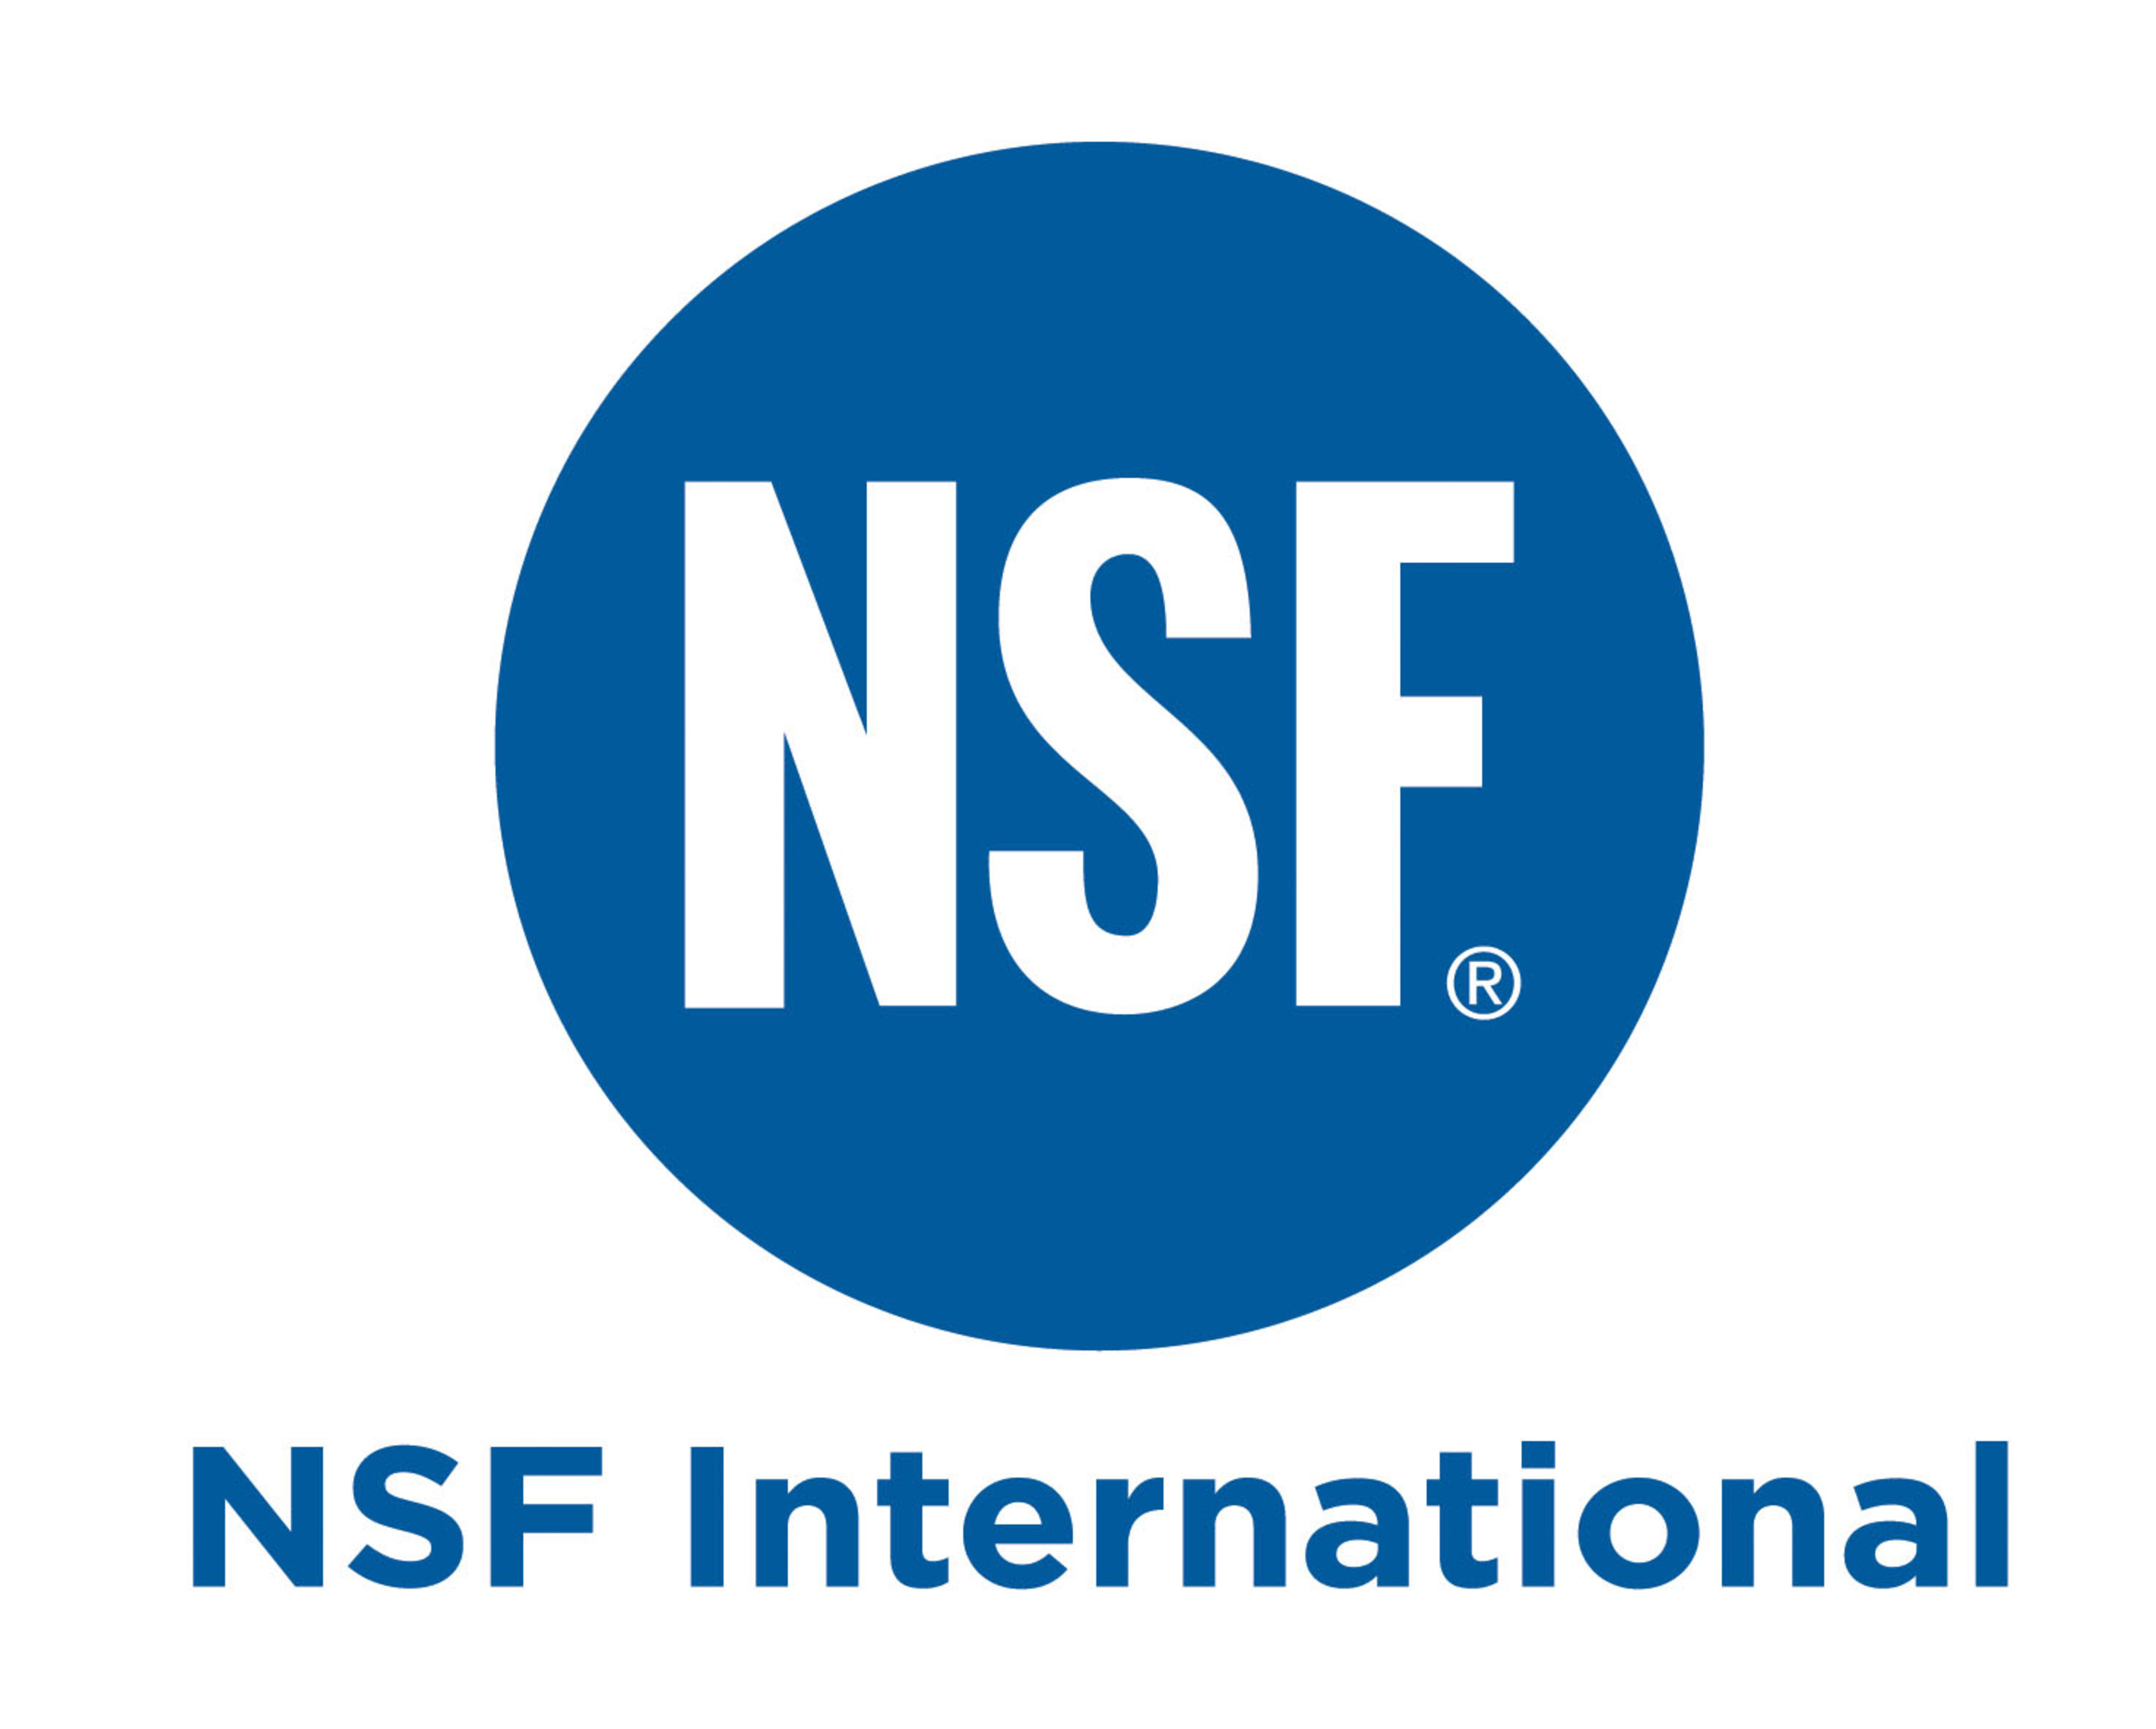 Nsf Certified Drinking Water Treatment Chemicals